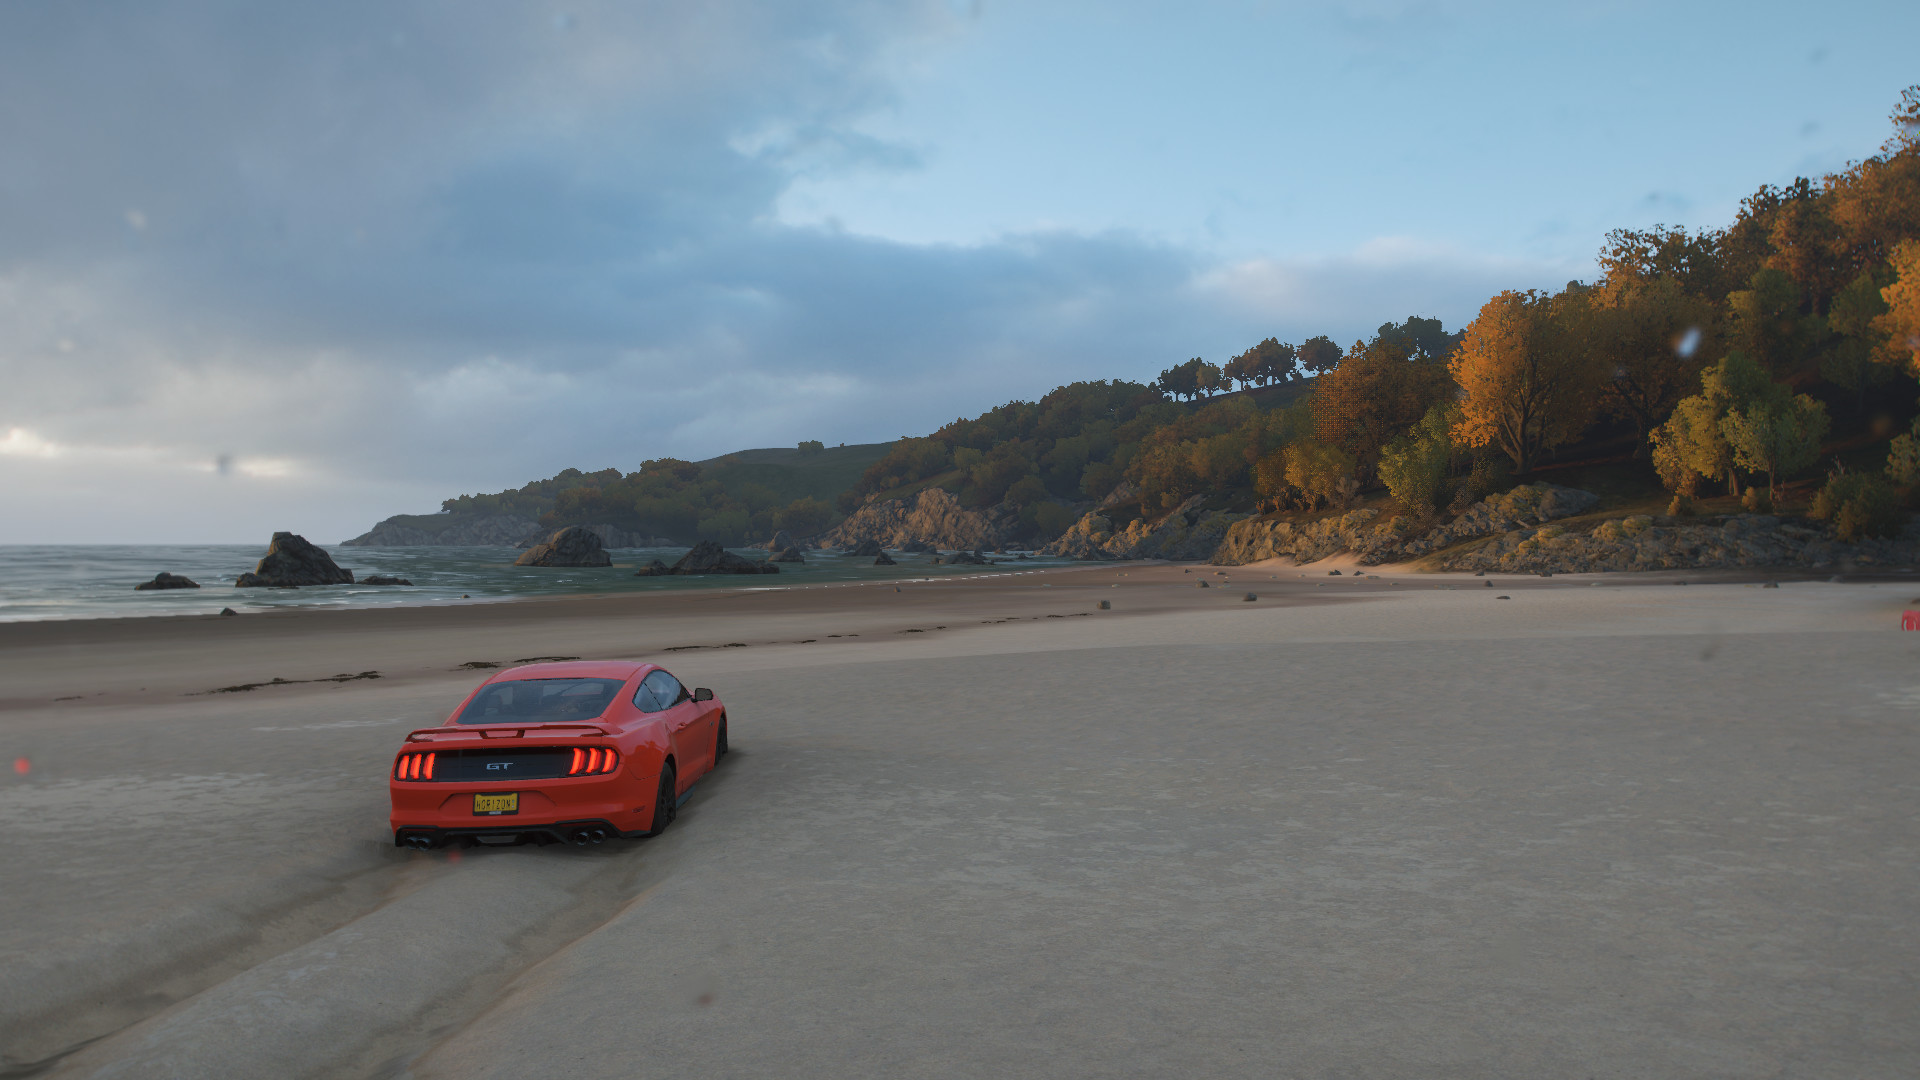 Stefan oprisan forza horizon 4 screenshot 2018 11 17 21 22 01 65